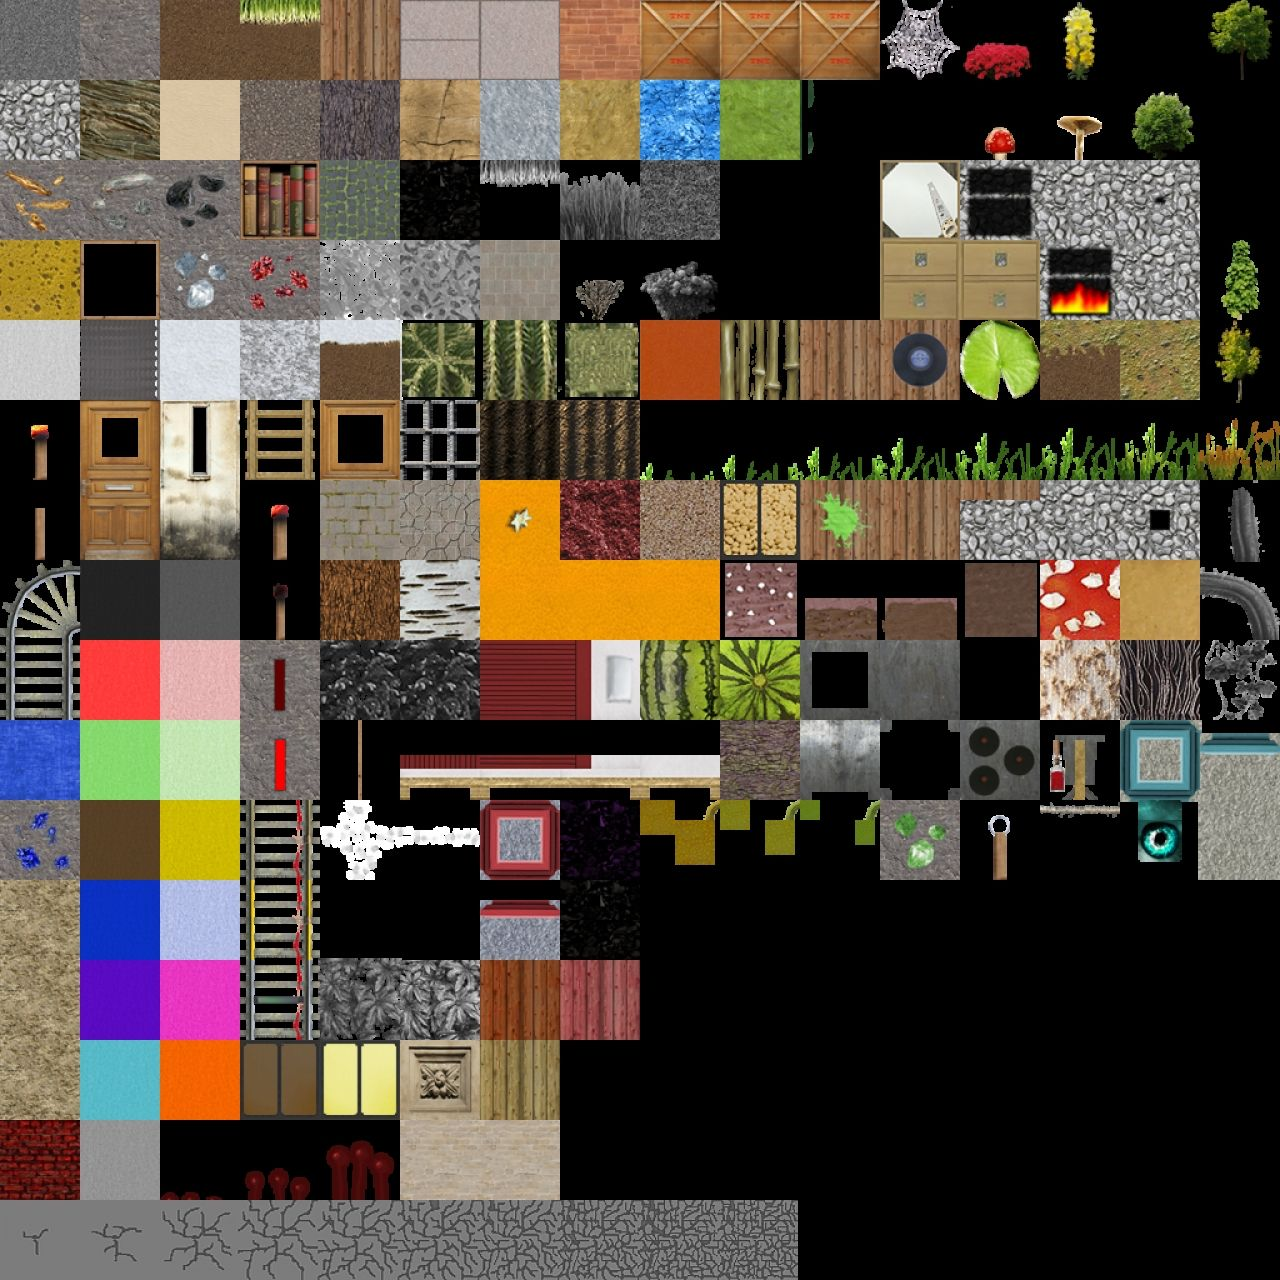 b5665  Insanely Real Texture Pack 1 [1.4.7/1.4.6] [64x] Insanely Real Texture Pack Download